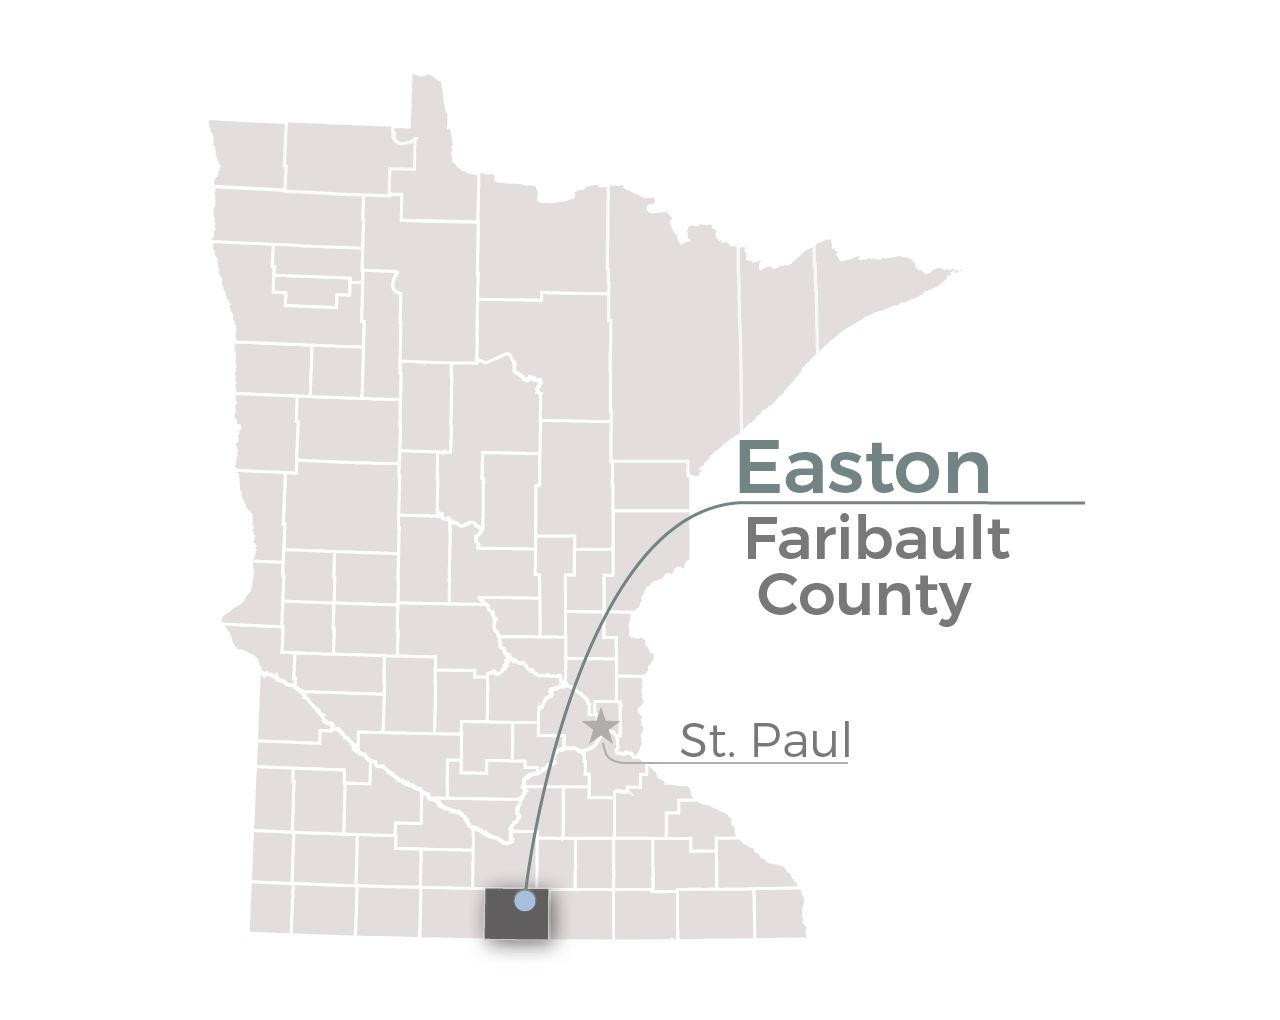 Easton, Minn. in Faribault County